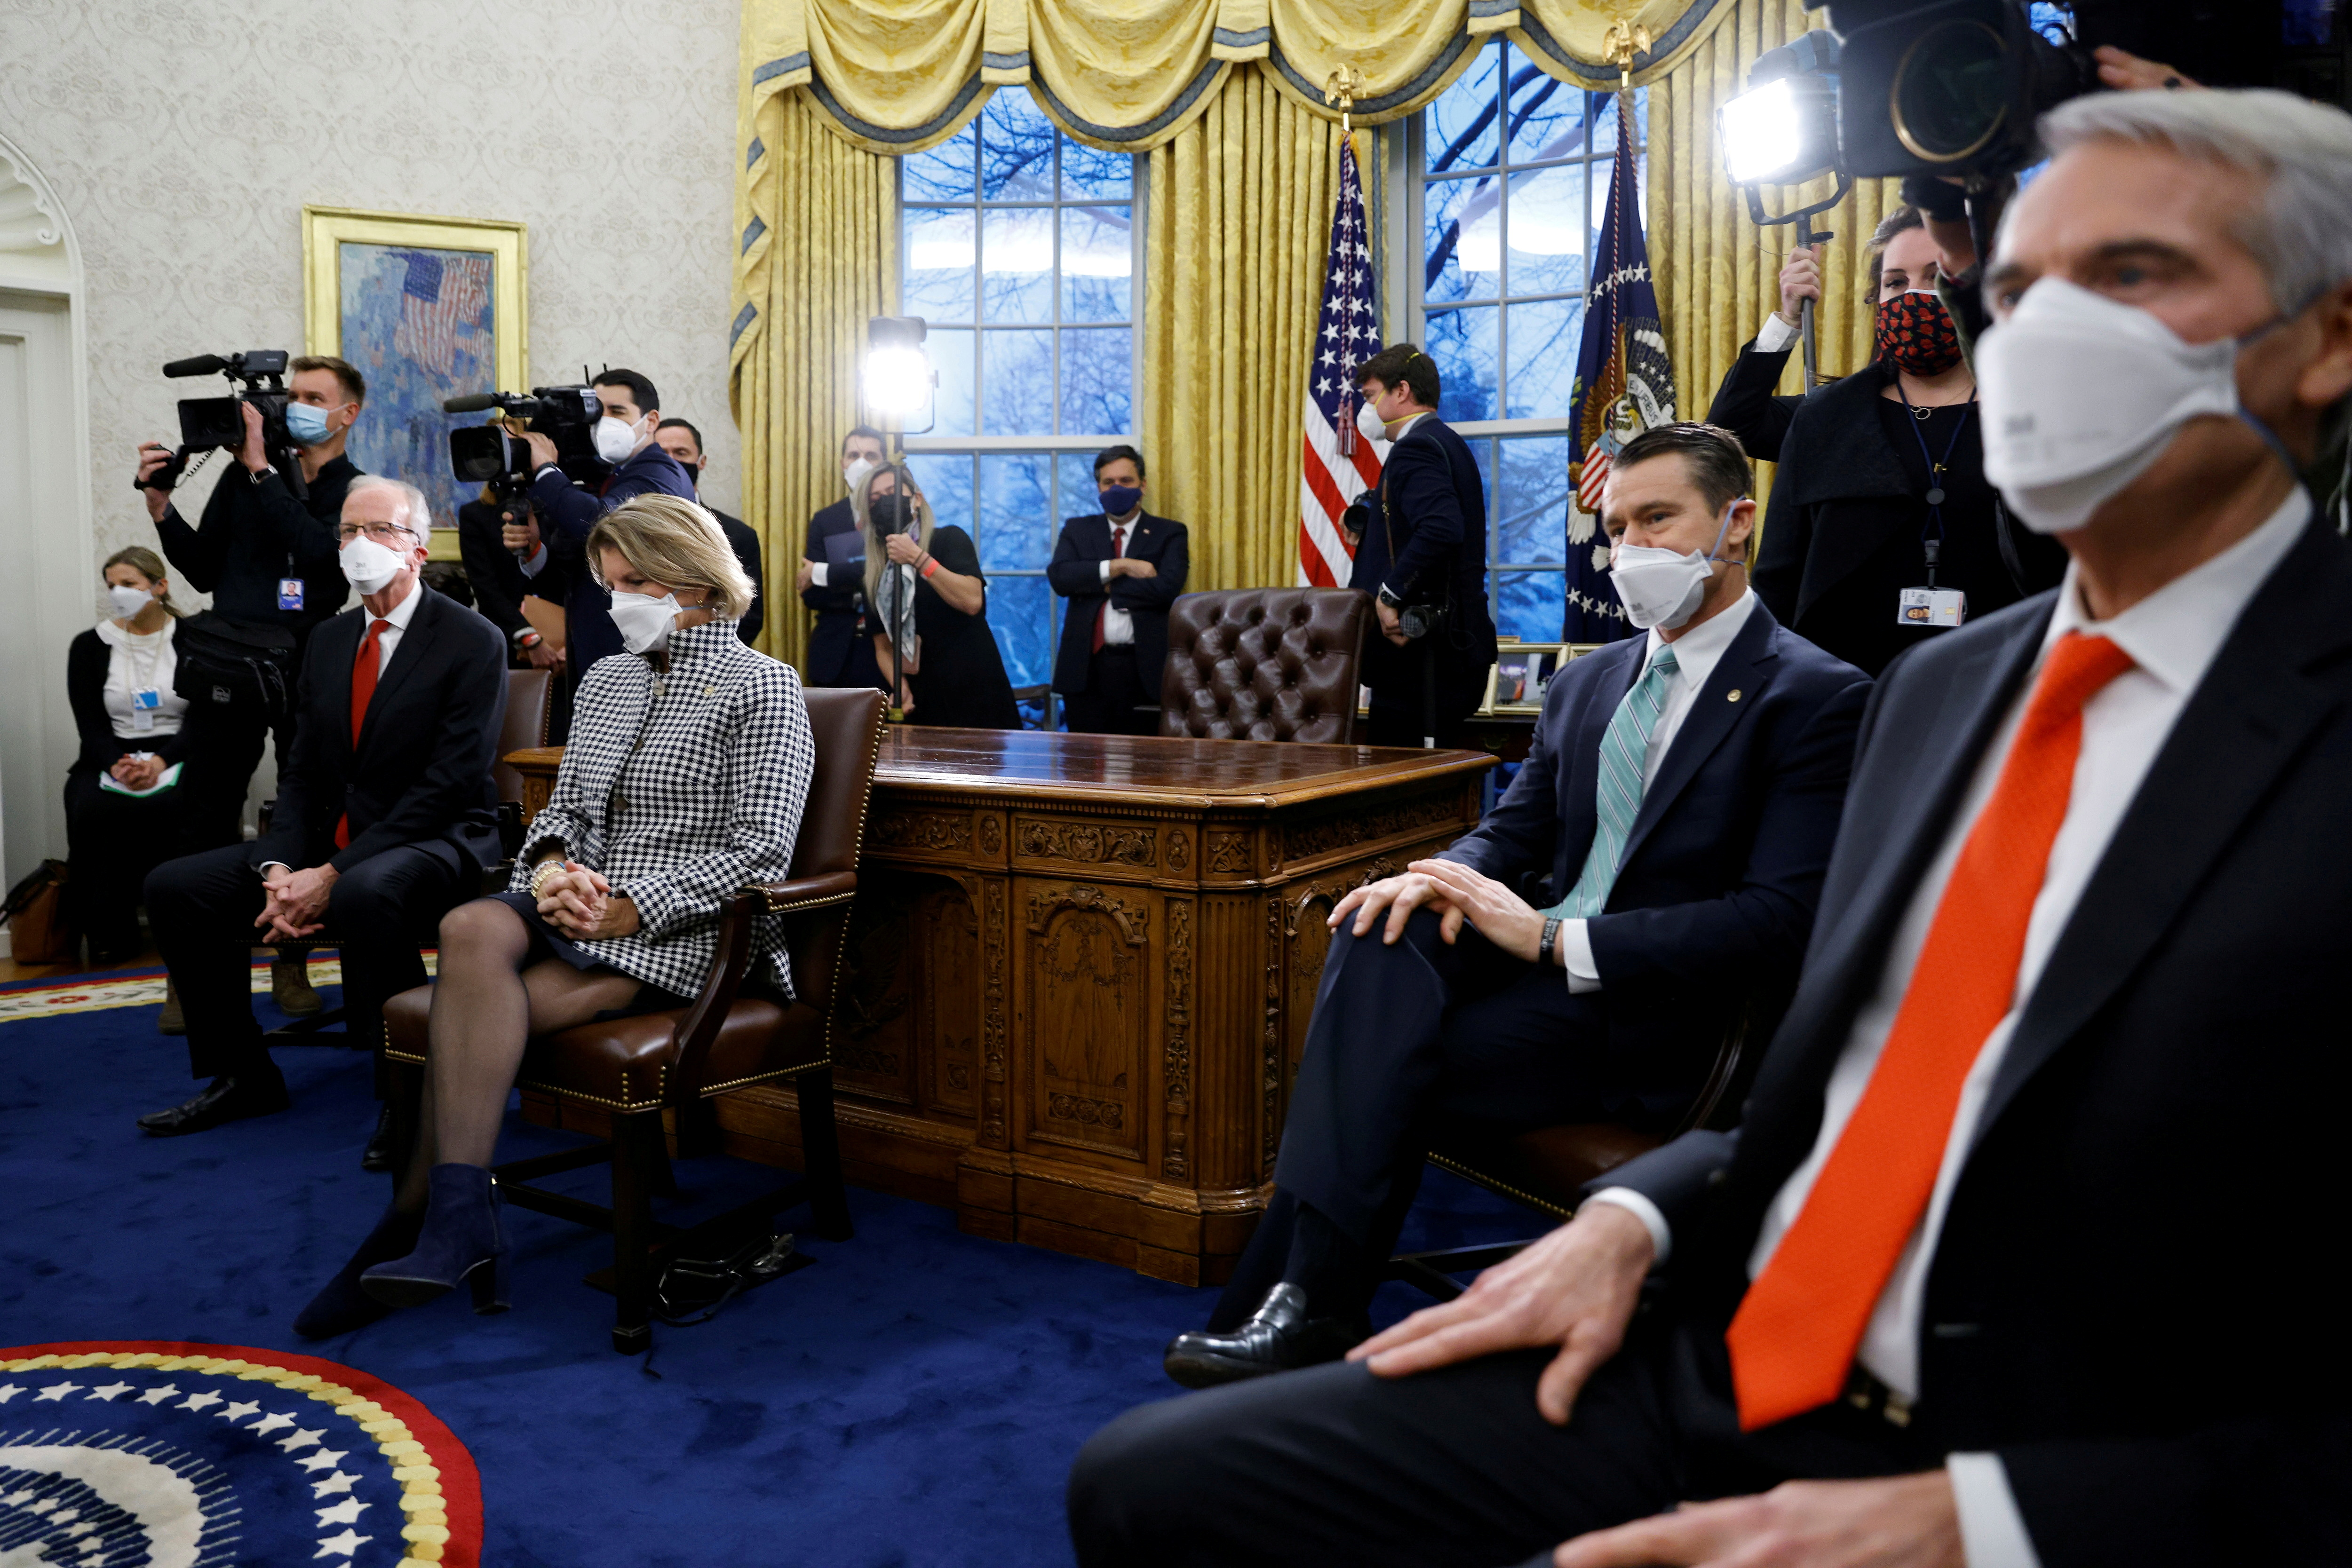 Republican senators look on during a meeting with U.S. President Joe Biden and Vice President Kamala Harris, not pictured, to discuss coronavirus disease (COVID-19) federal aid legislation inside the Oval Office at the White House in Washington, U.S., February 1, 2021. REUTERS/Tom Brenner